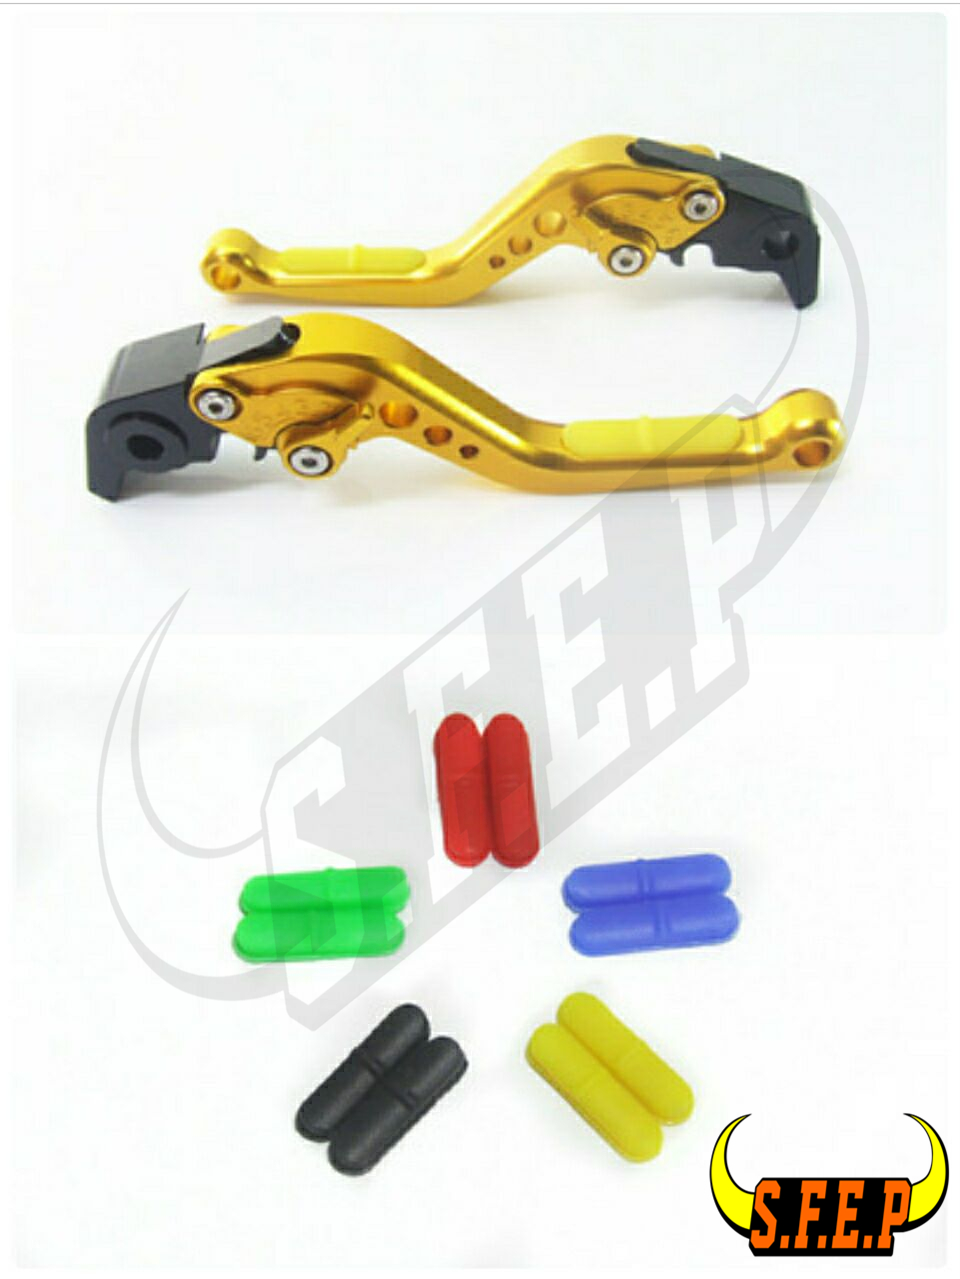 CNC Adjustable Motorcycle Brake and Clutch Levers with Anti-Slip For Triumph 675 STREET TRIPLE R/RX 2009-2016